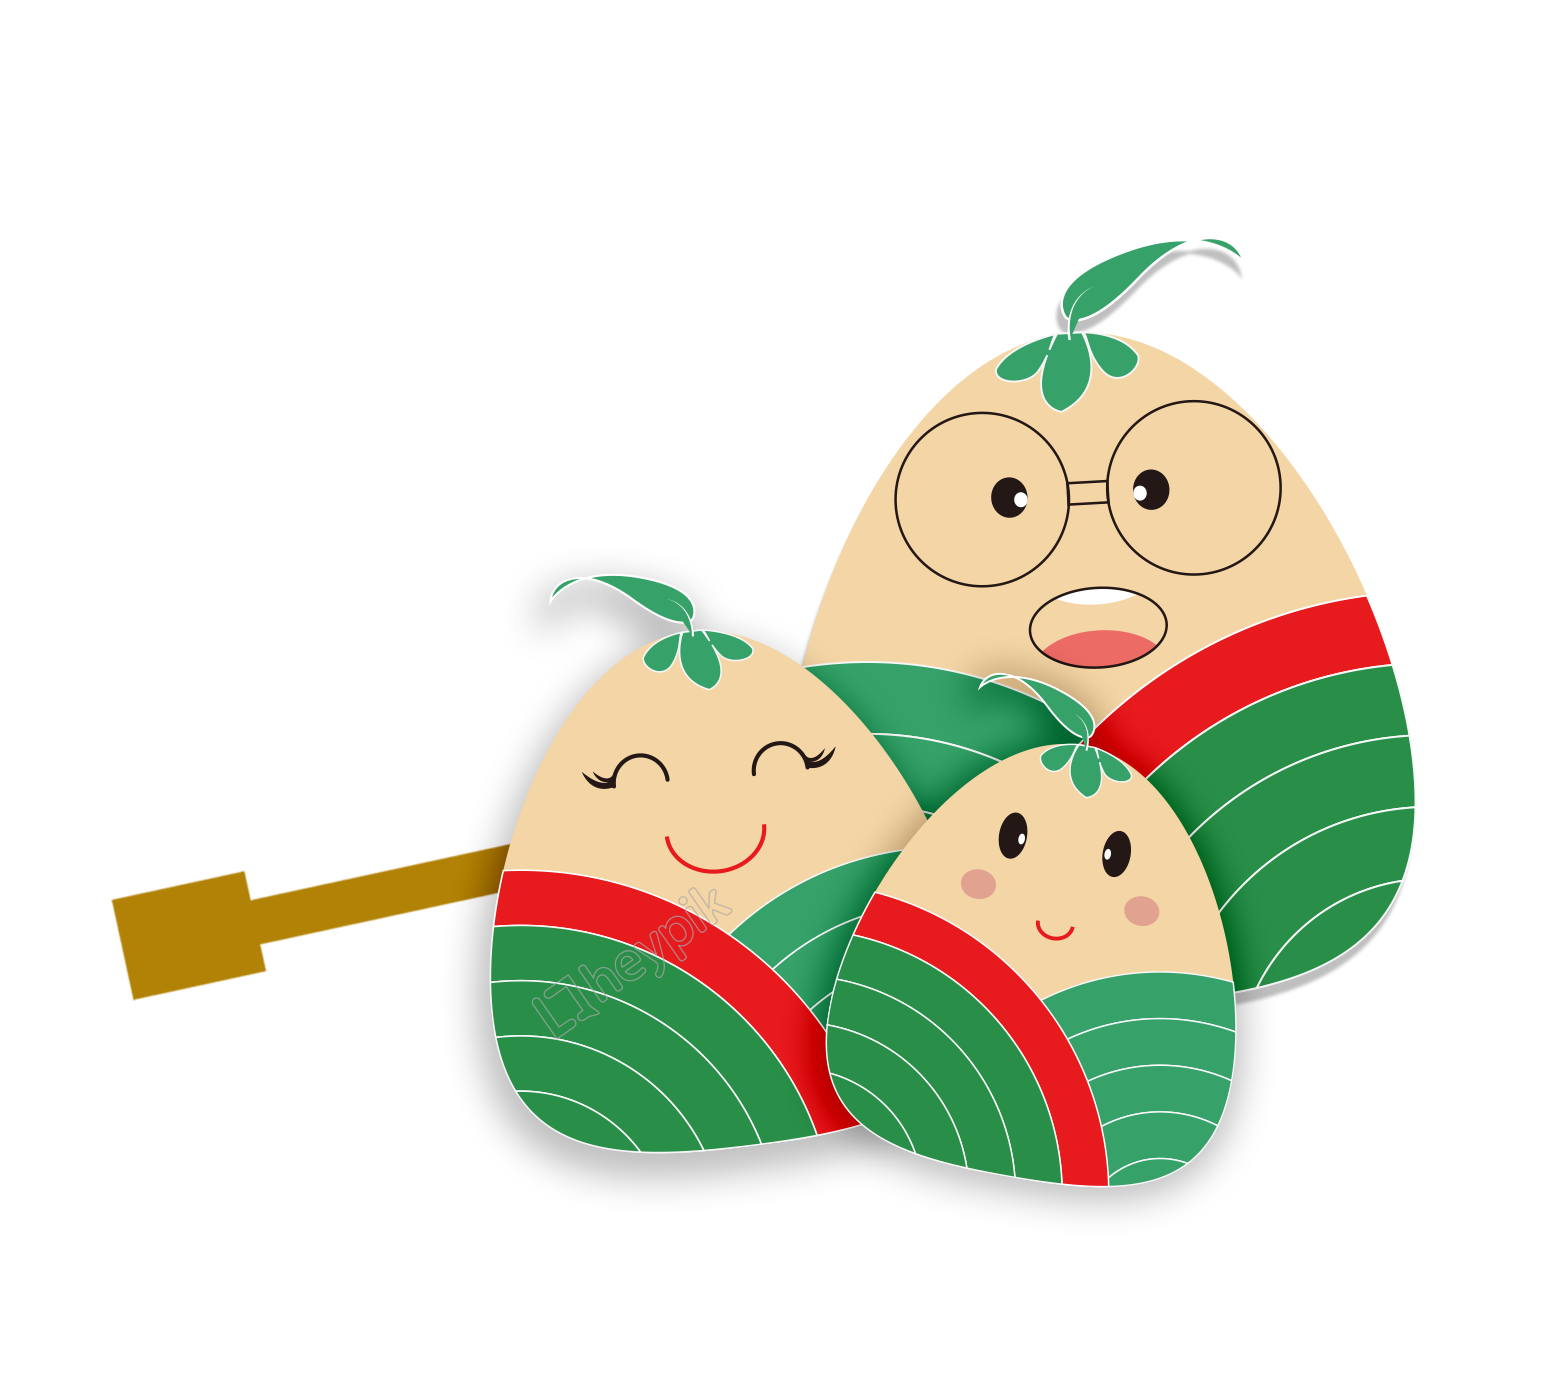 Dumpling vector cartoon. Hand drawn dice decoration